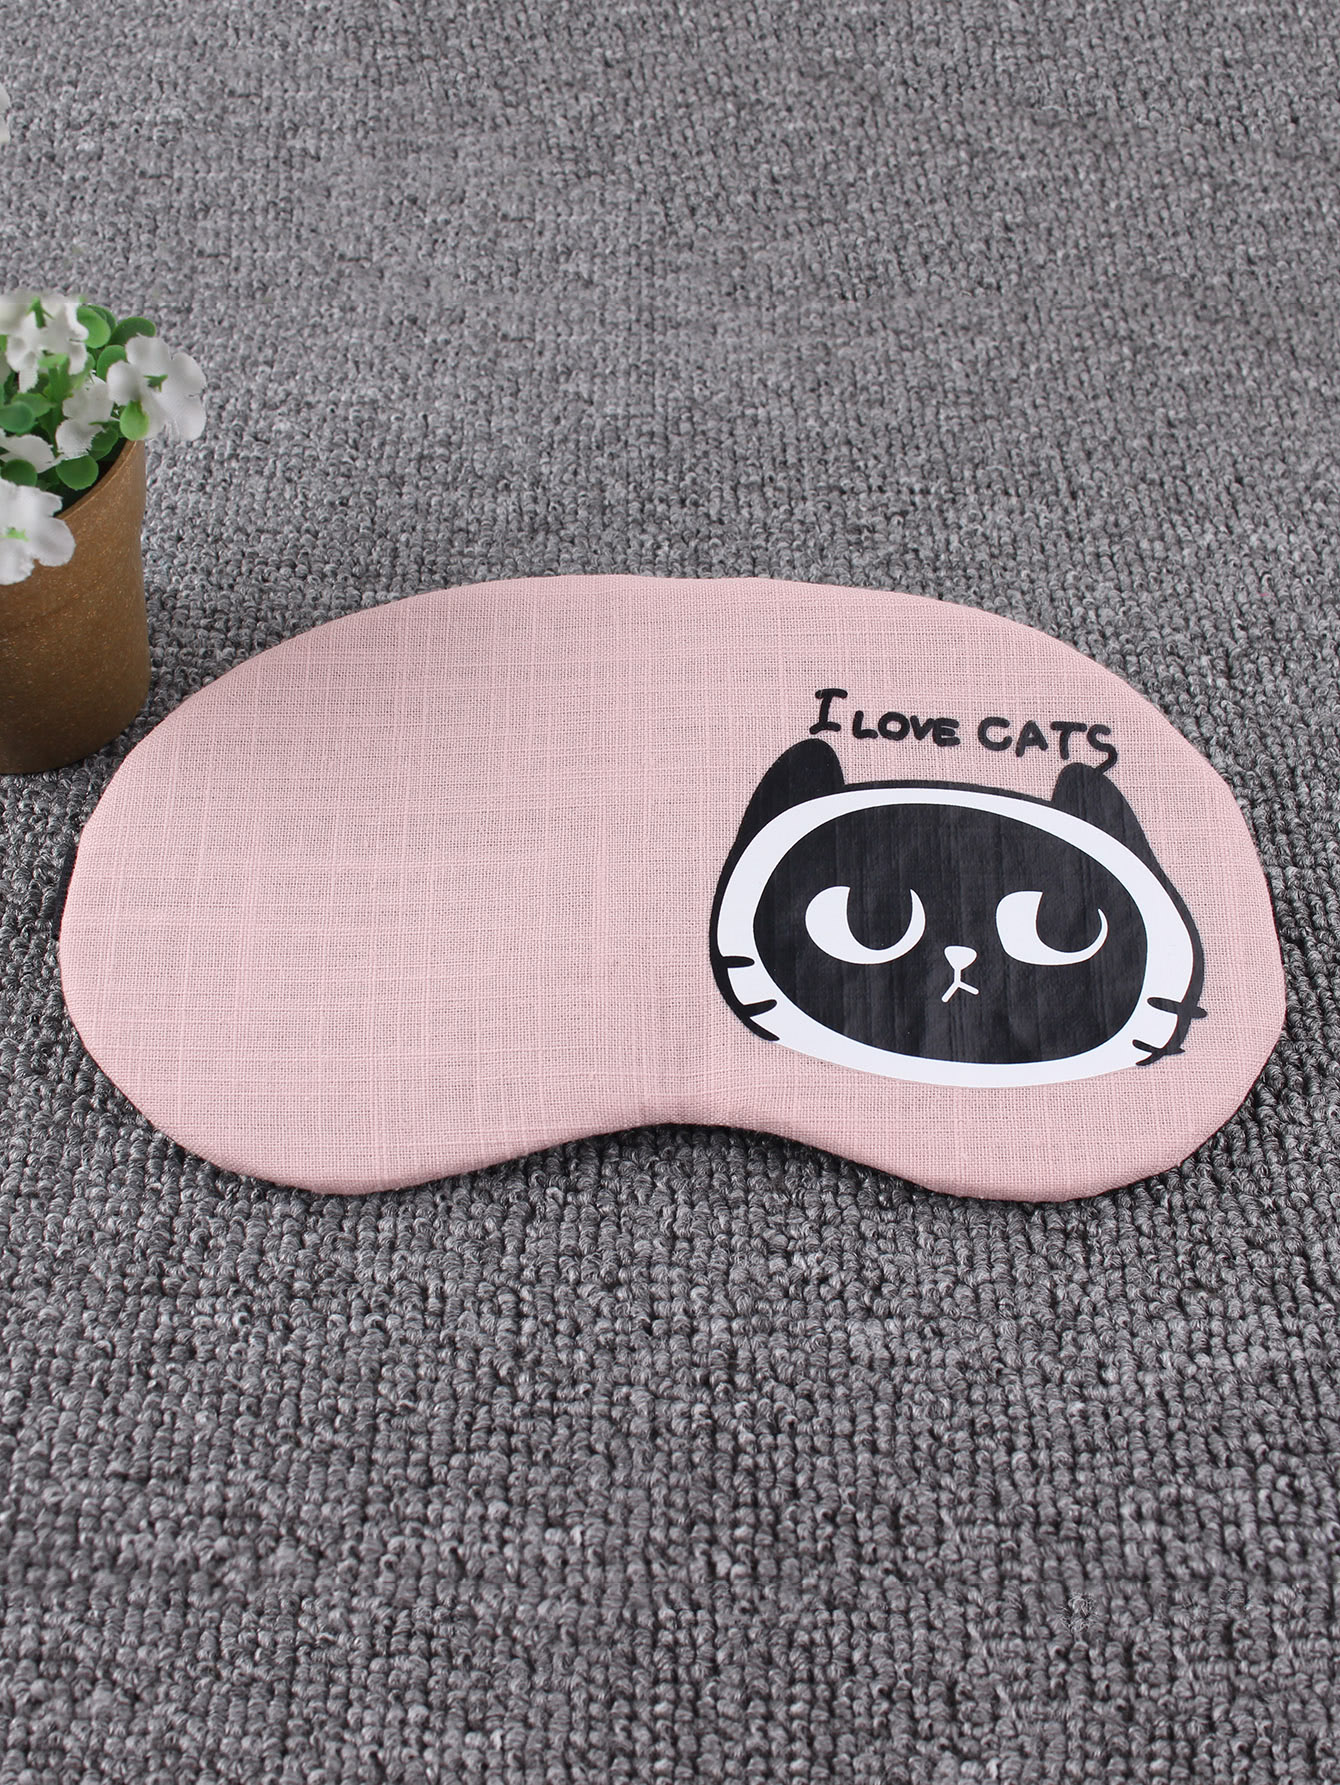 Cat Print Sleeping Eye Mask cat eye glasses tinize 2015 tr90 5832